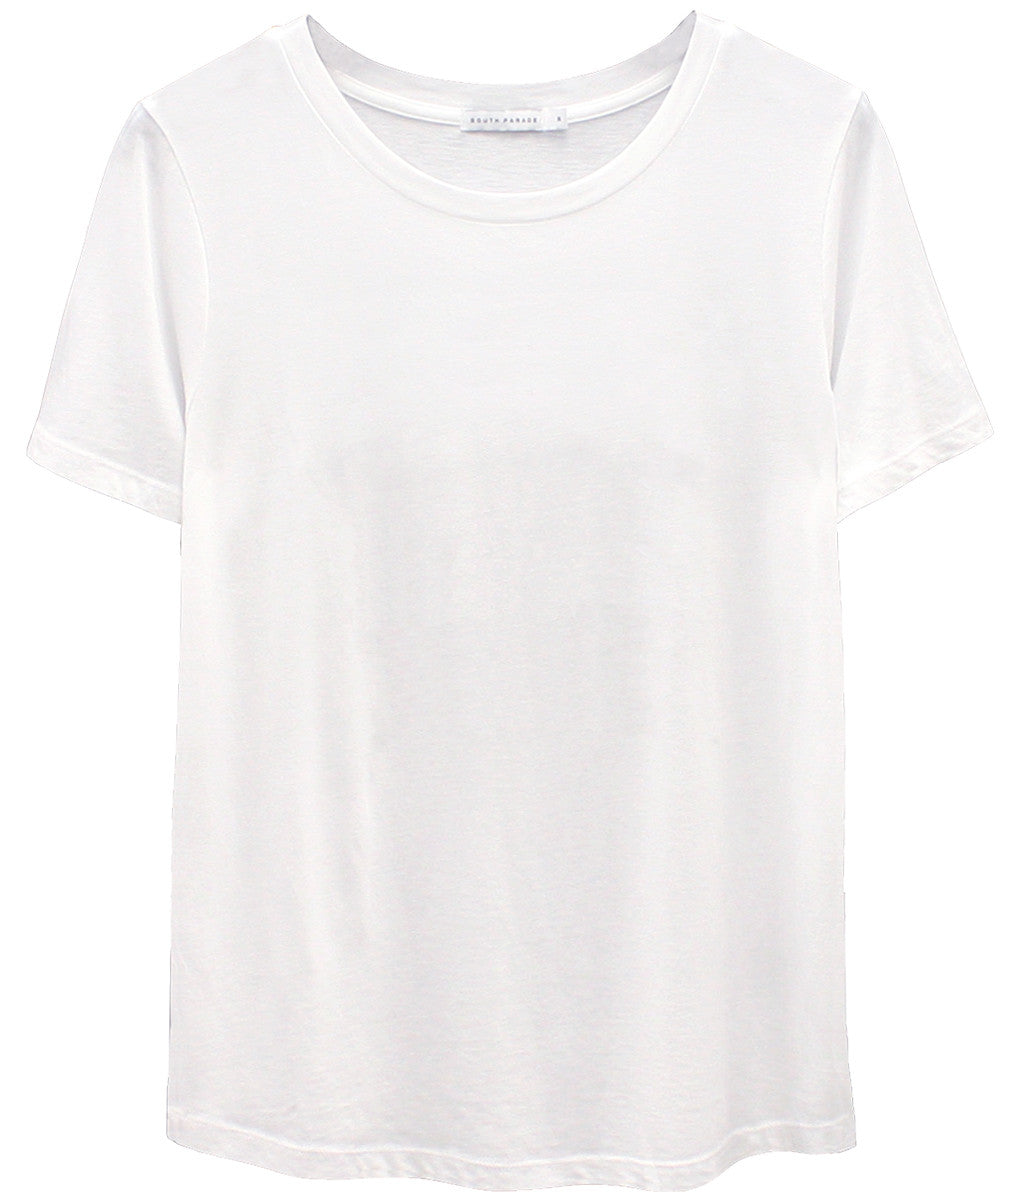 Lola - Basic Loose Tee - White